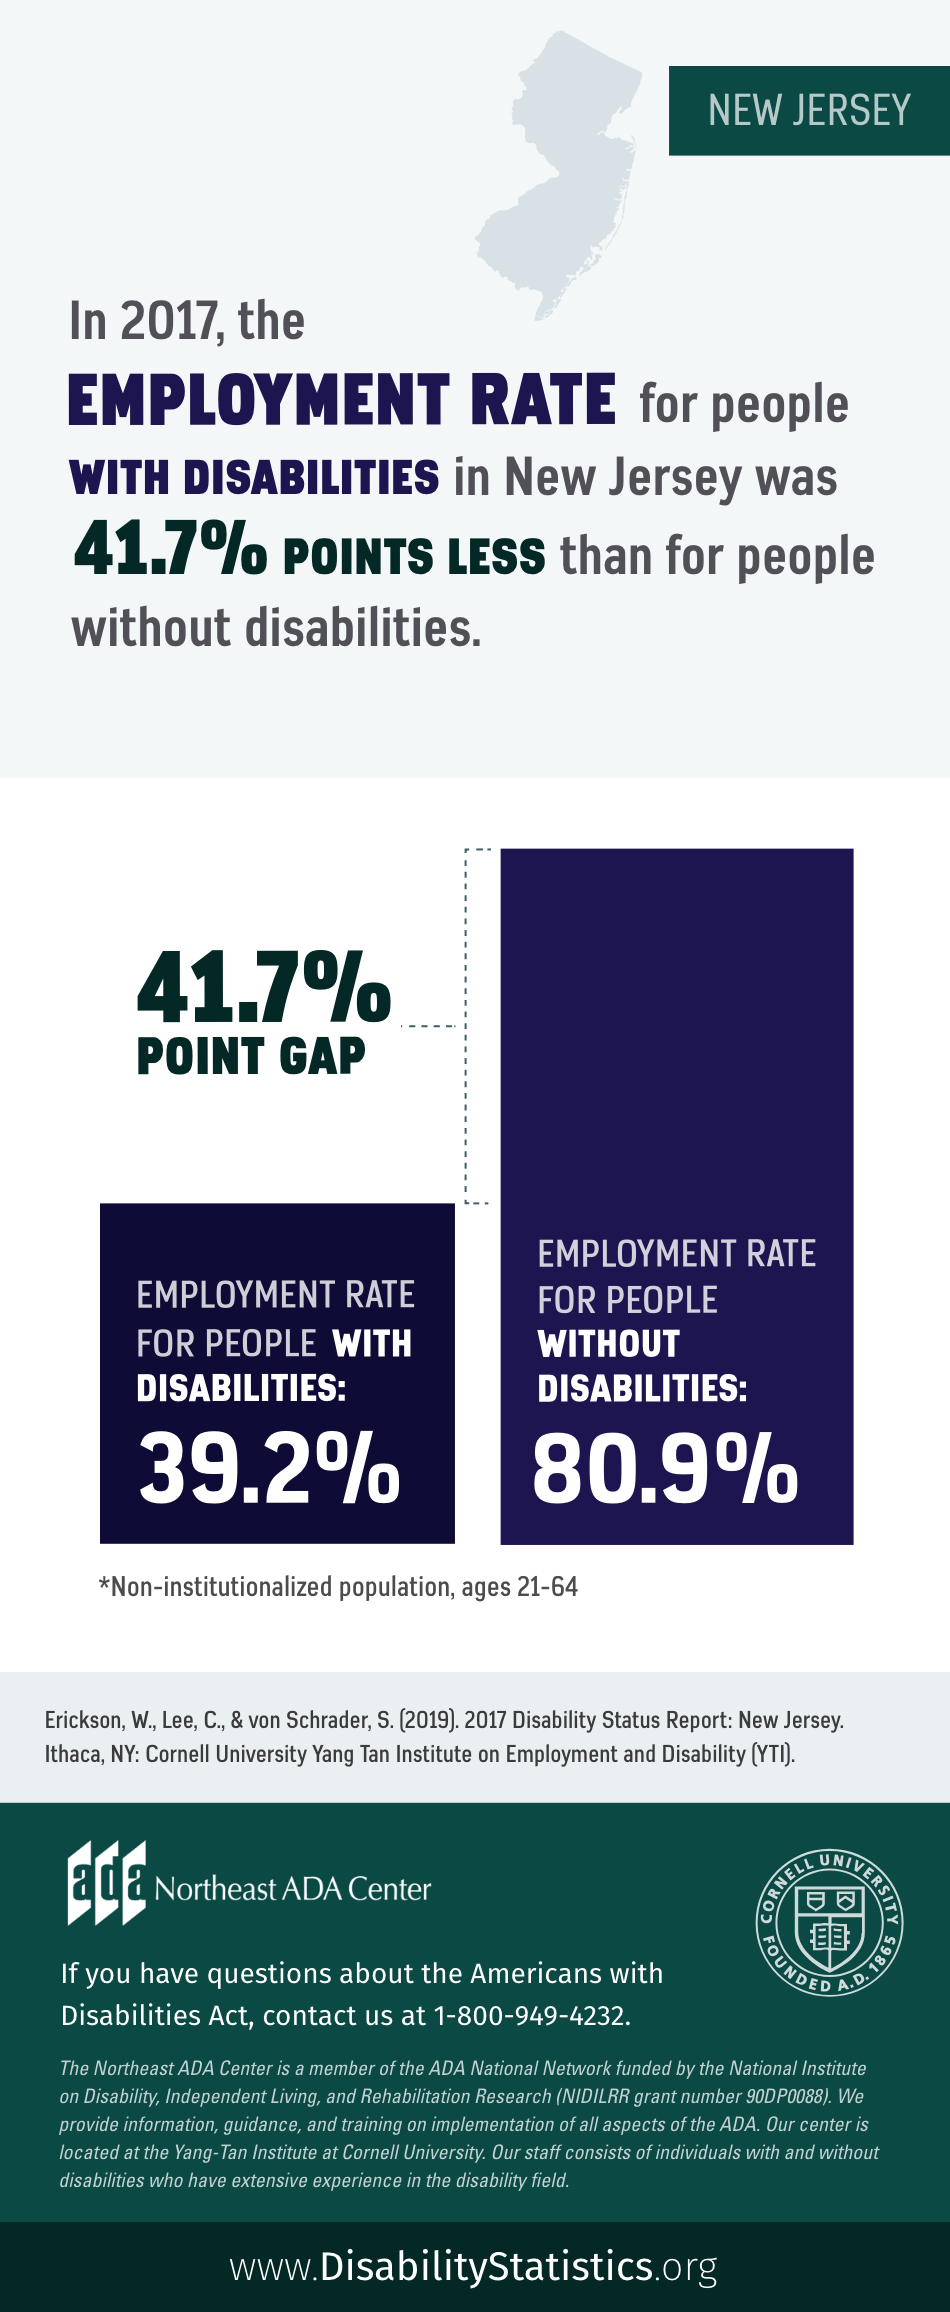 Infographic featuring text on top of an outline of New Jersey along with a bar graph showing employment rates for people with disabilities and people without disabilities in the New Jersey: